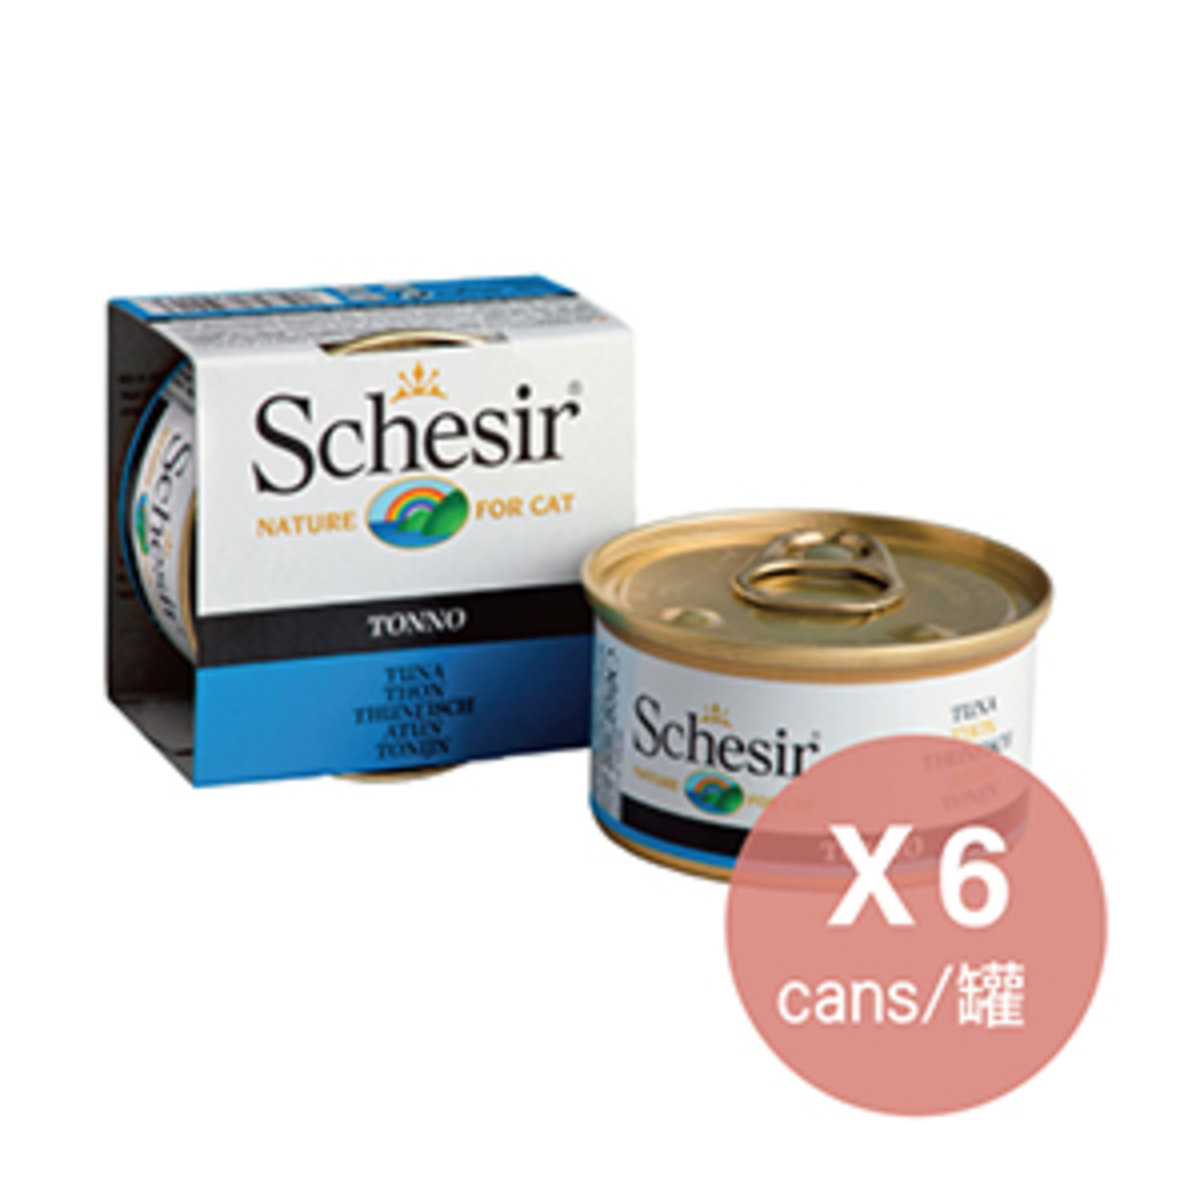 C135 Schesir Tuna for cats - Jelly 85g x6